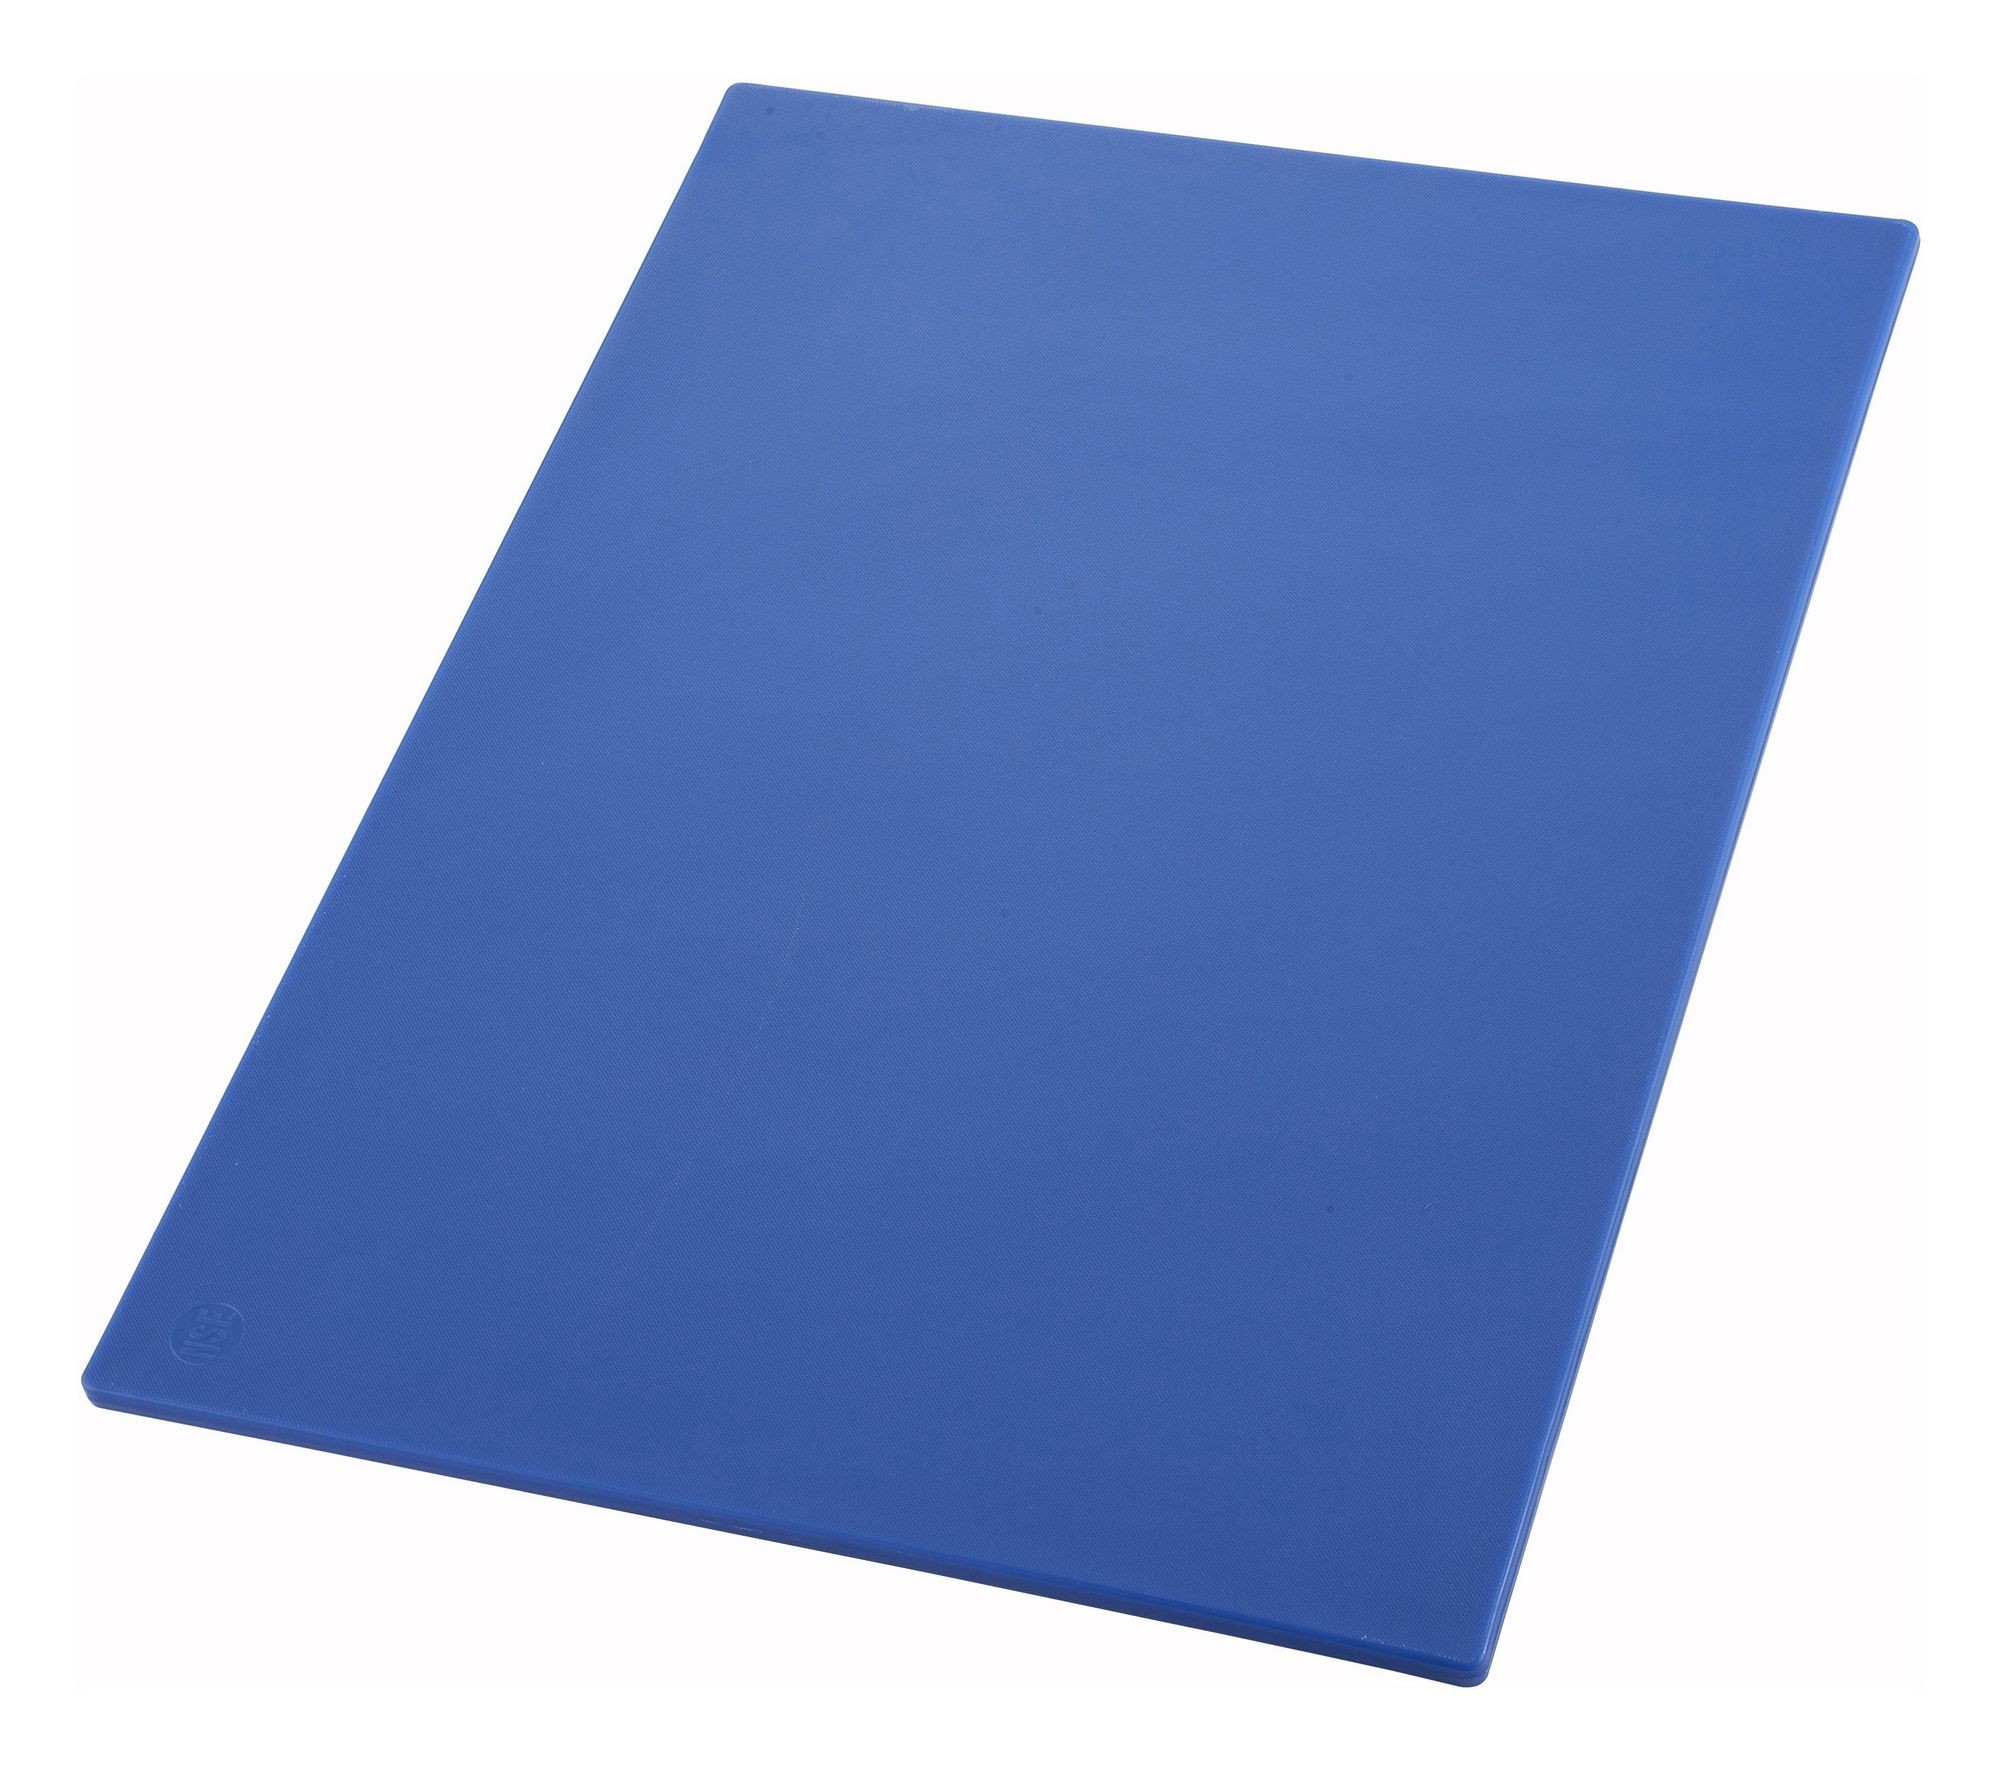 "Winco CBBU-1218 Blue Plastic Cutting Board 12""x 18"" x 1/2"""